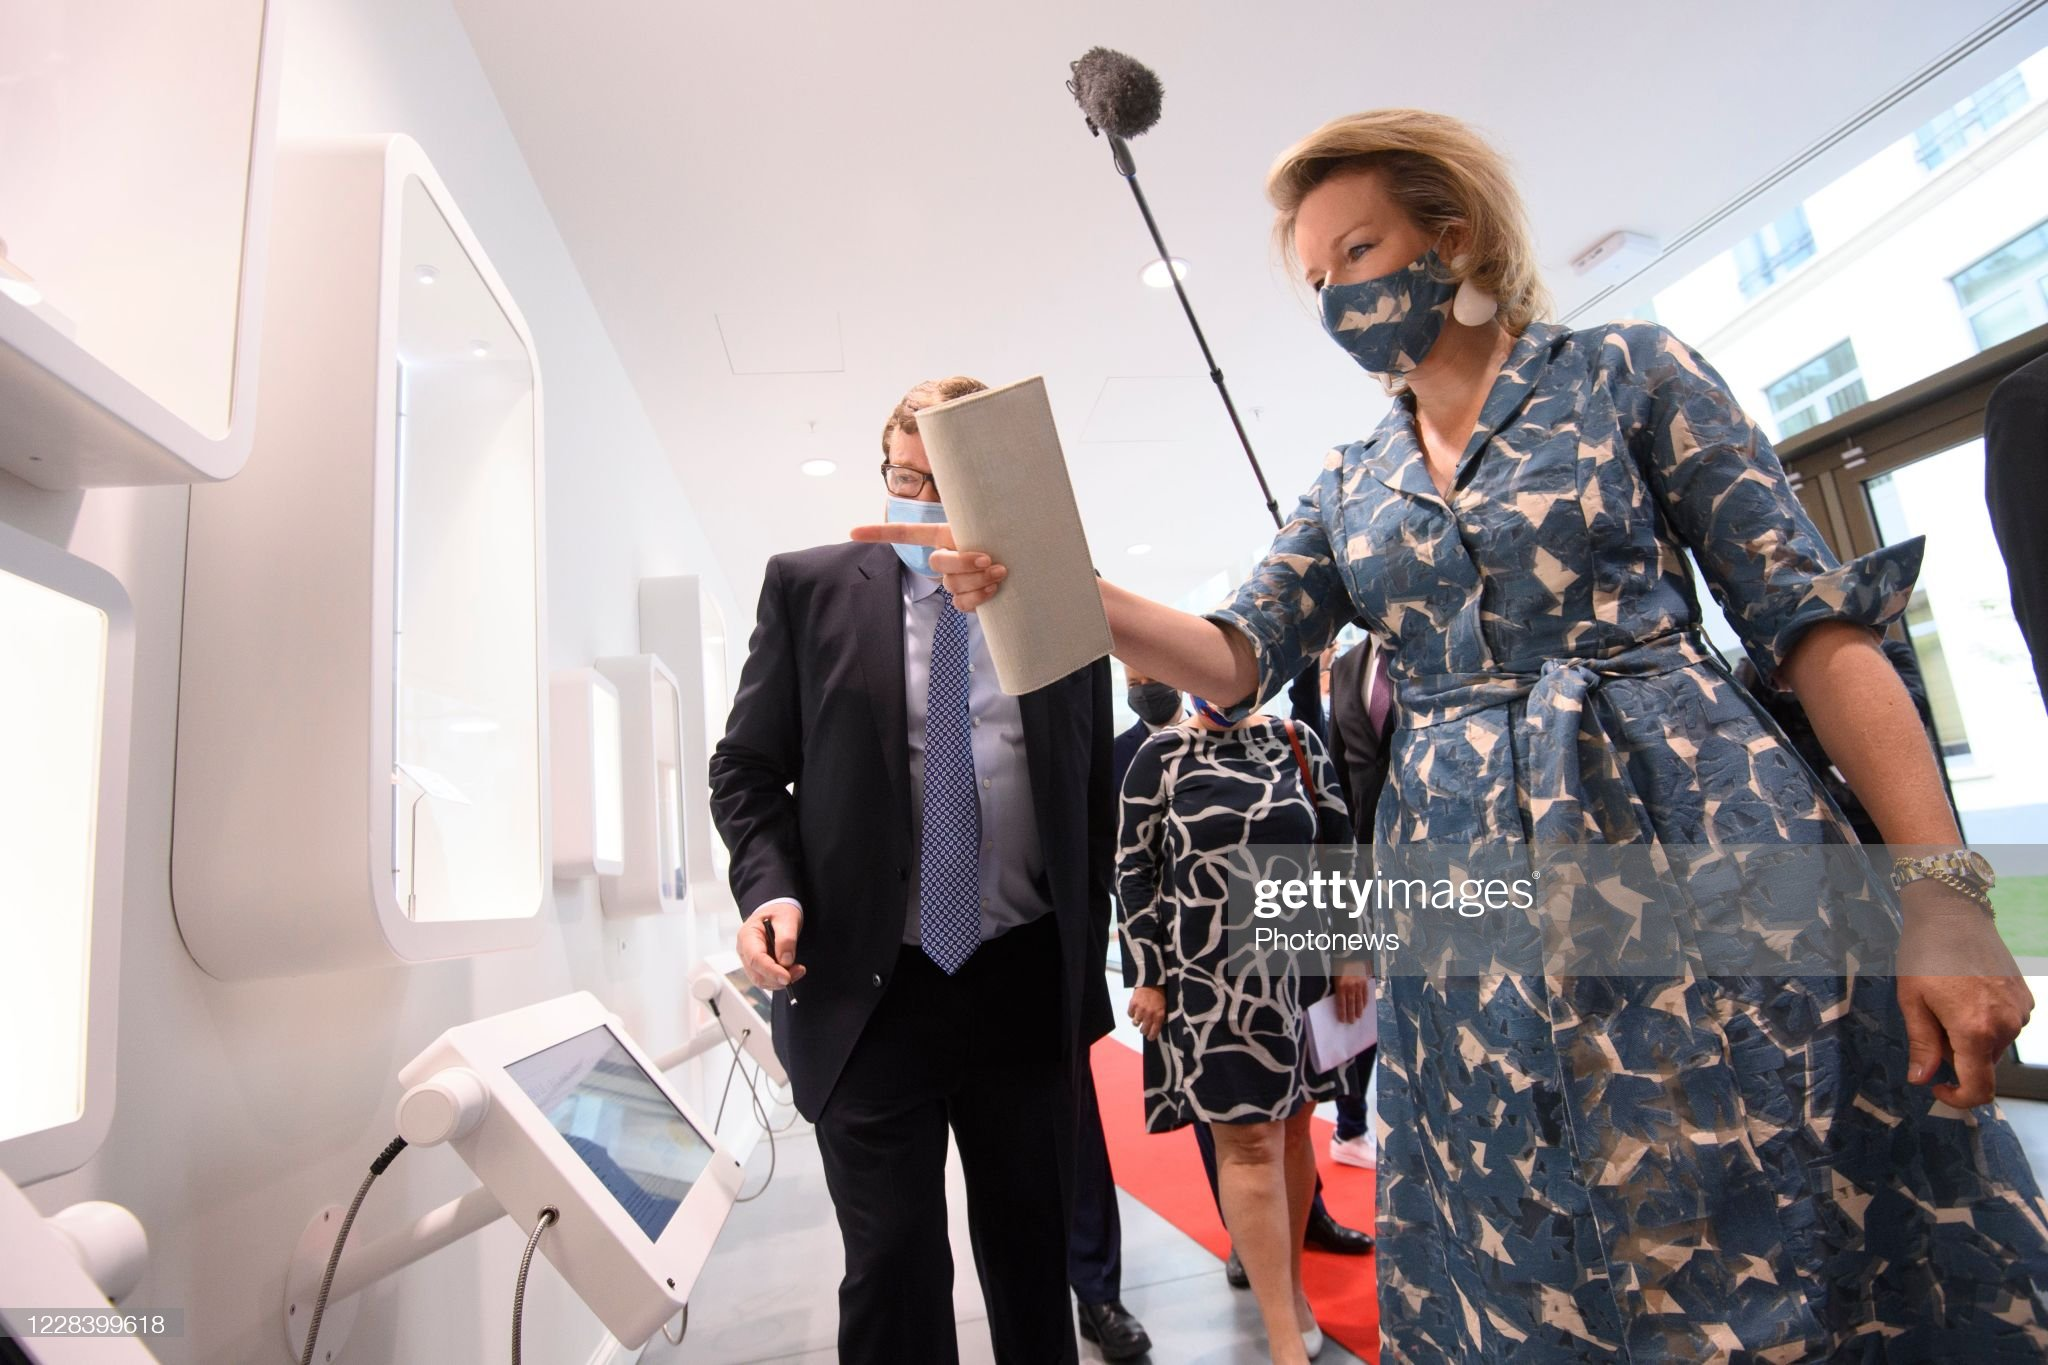 opening-of-the-new-wikifin-lab-in-the-presence-of-the-queen-mathilde-picture-id1228399618